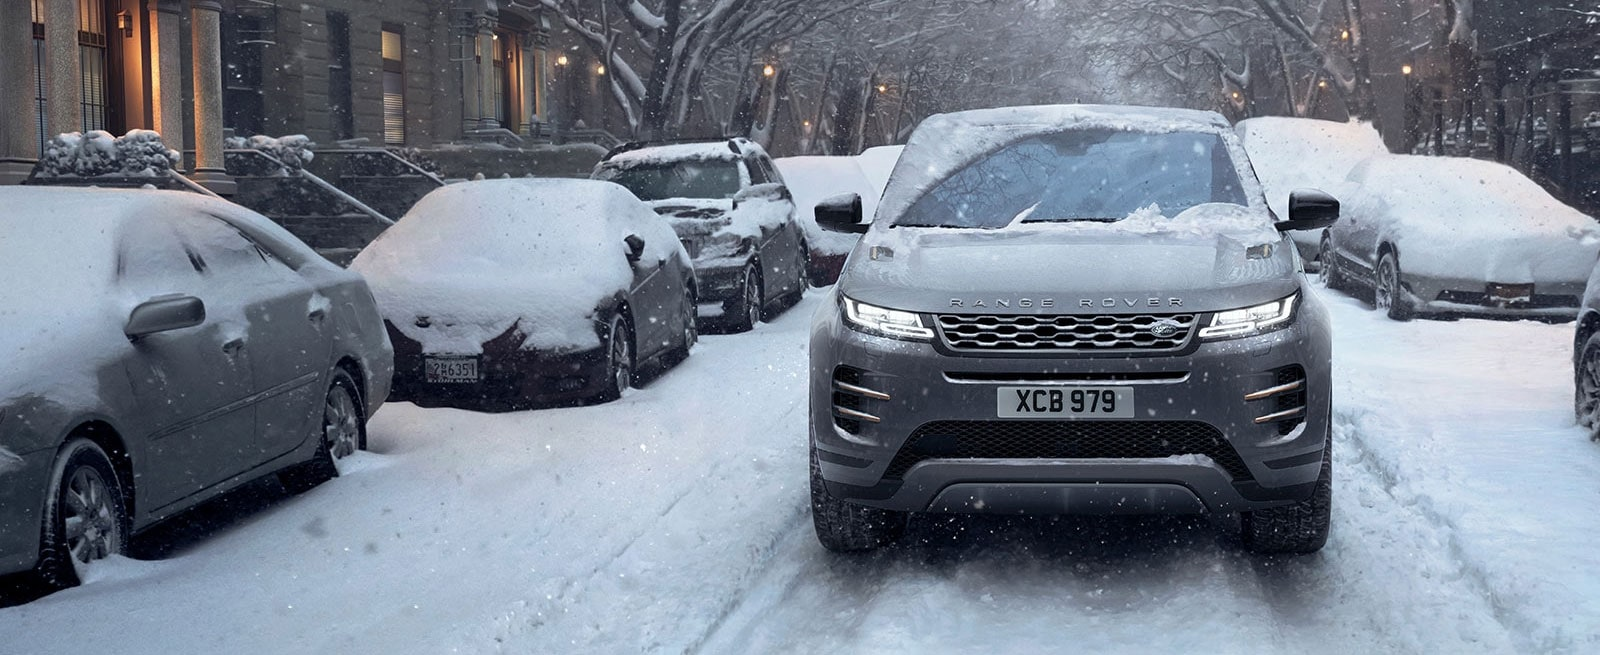 A Silver Range Rover Evoque Driving Down a Snow Covered City Street